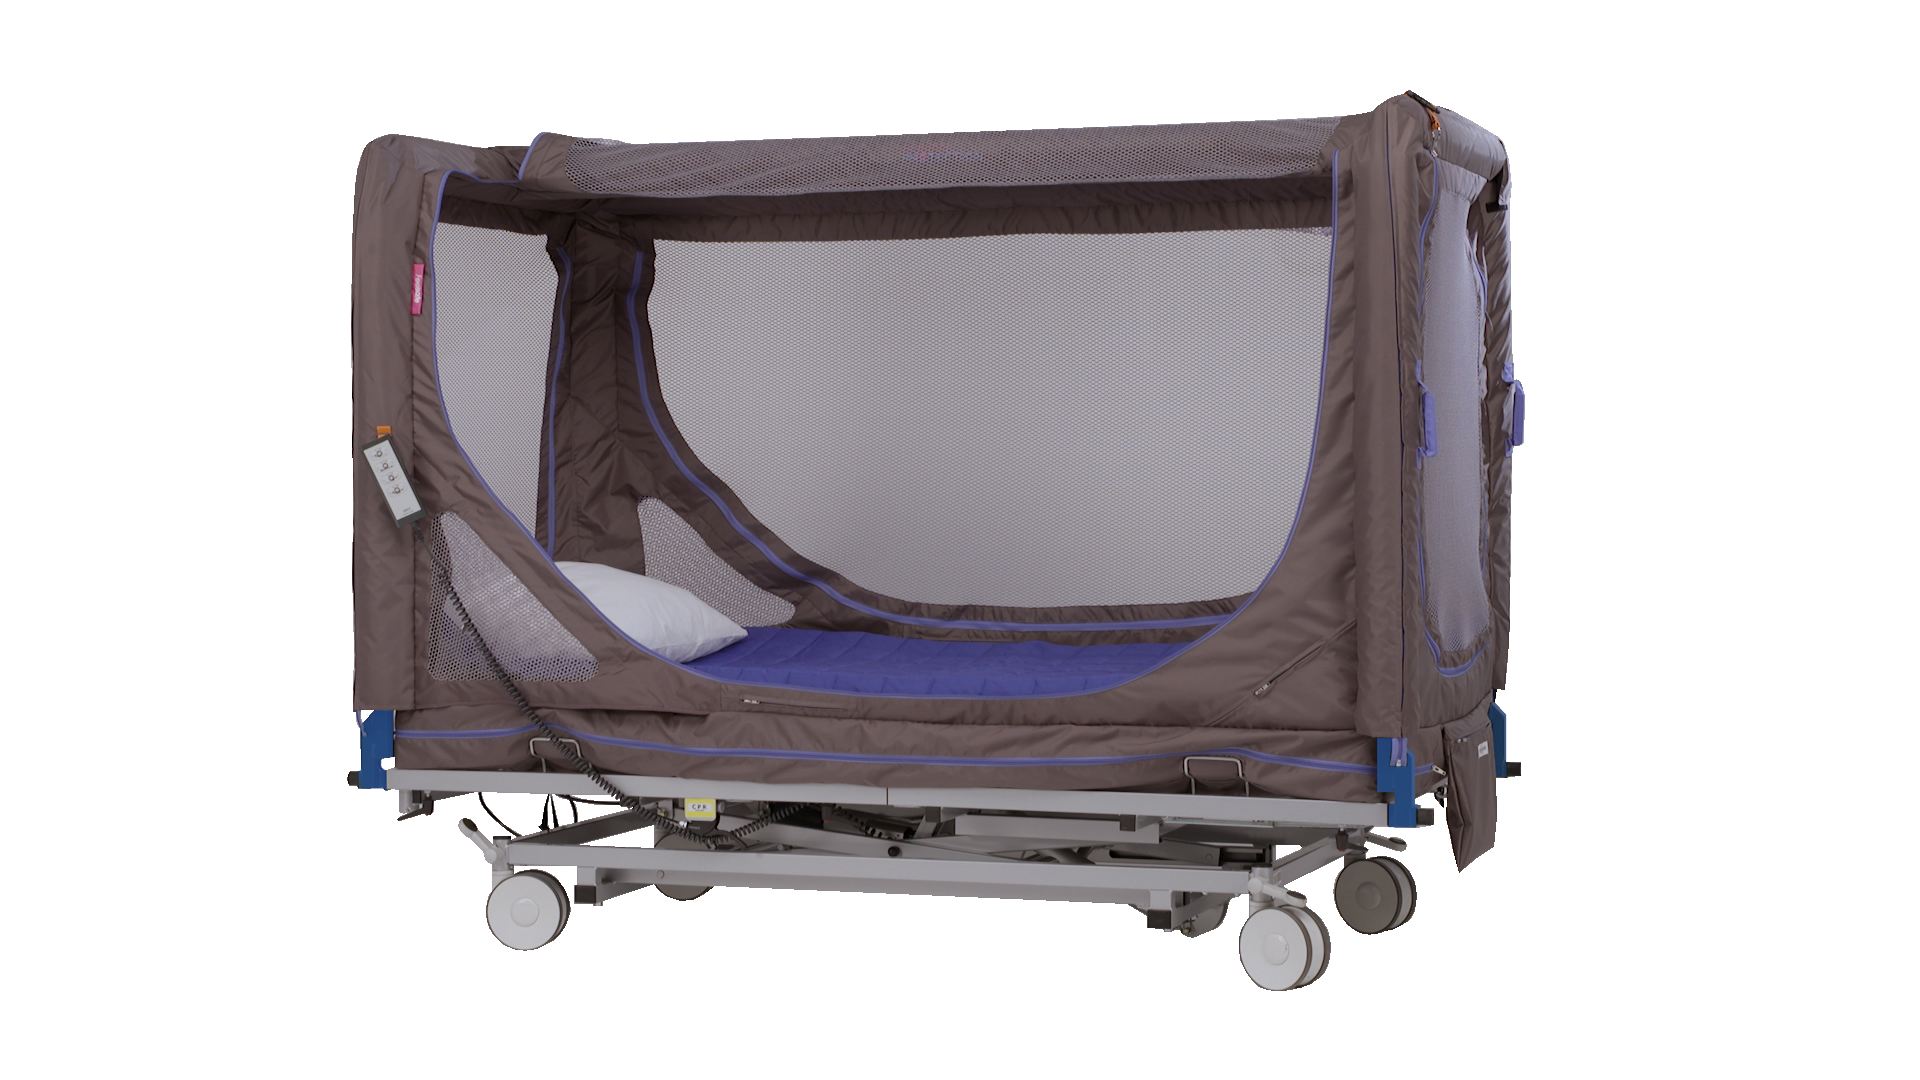 Canopy bed for dementia patients with behavioural problems